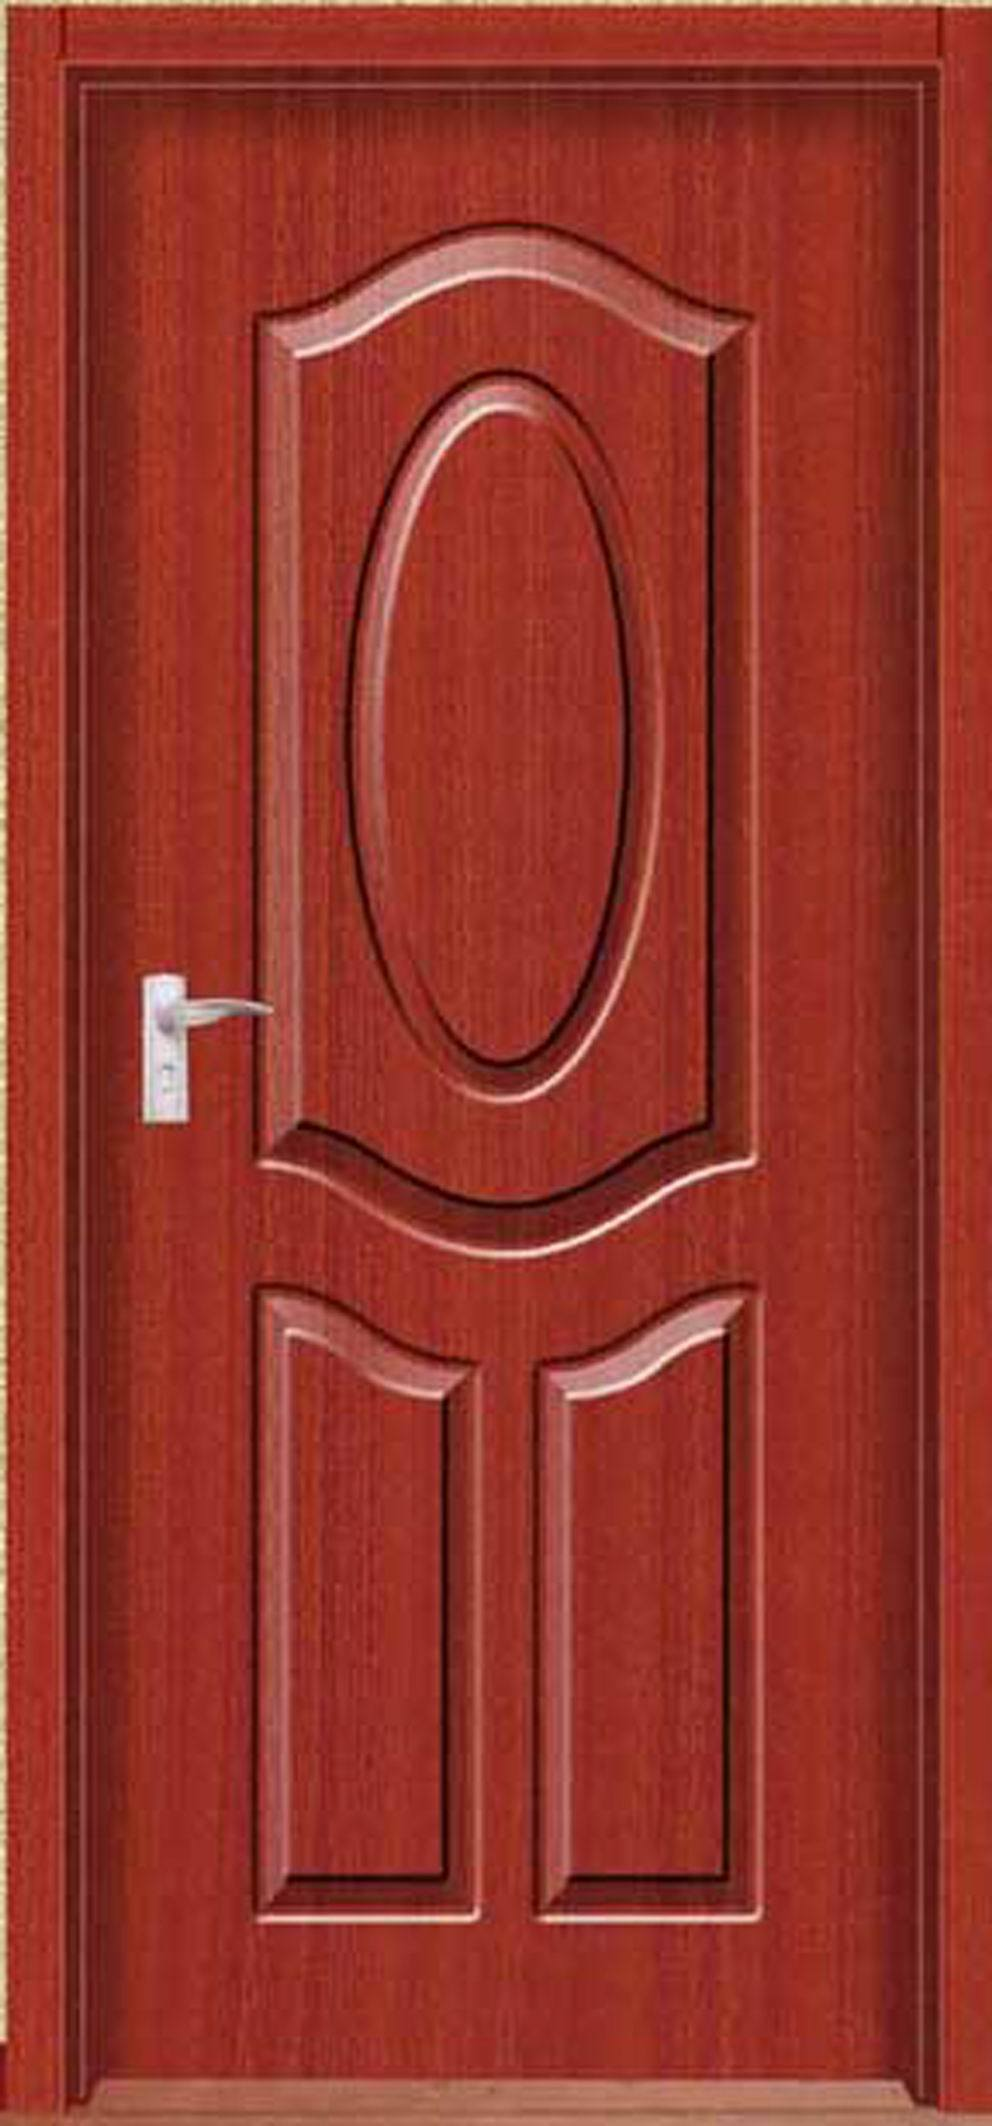 China melamine door hd 8008 photos pictures made in for Door design picture